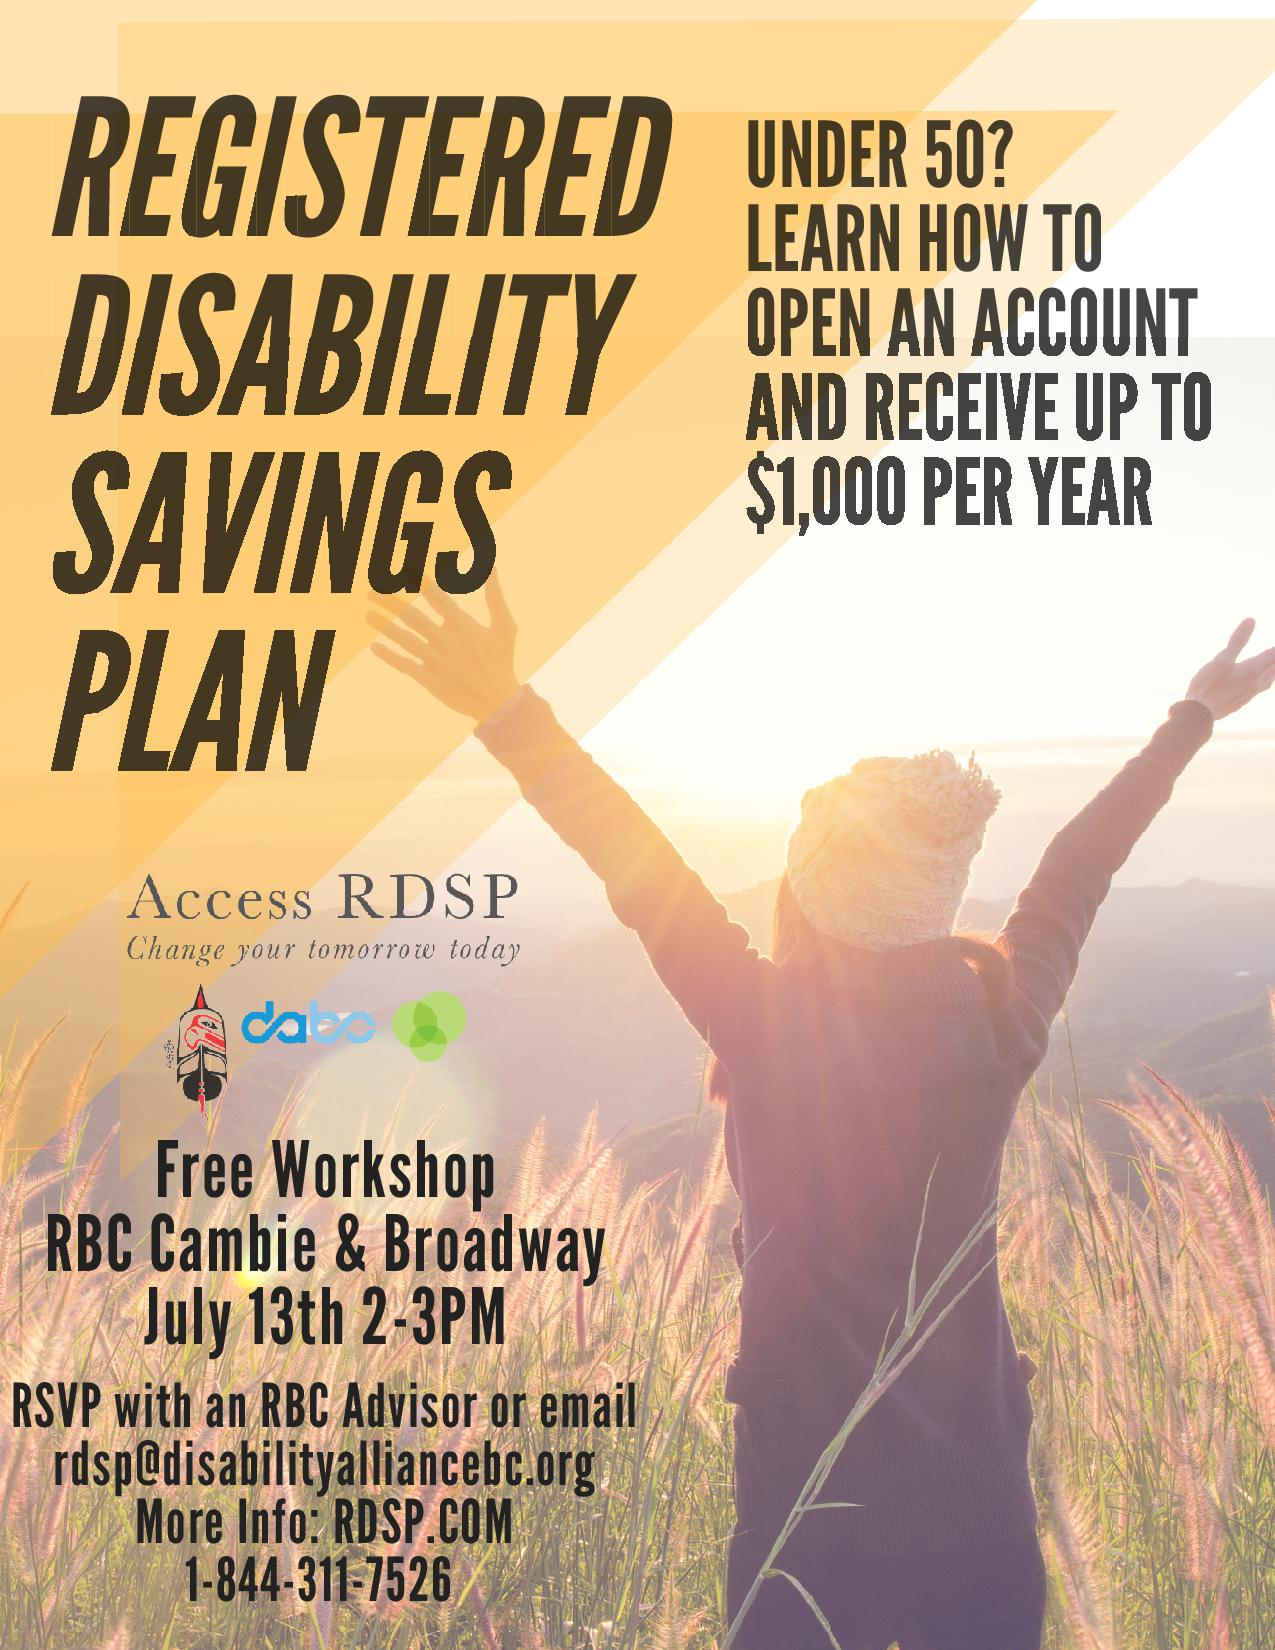 Free Workshop On The Registered Disability Savings Plan At